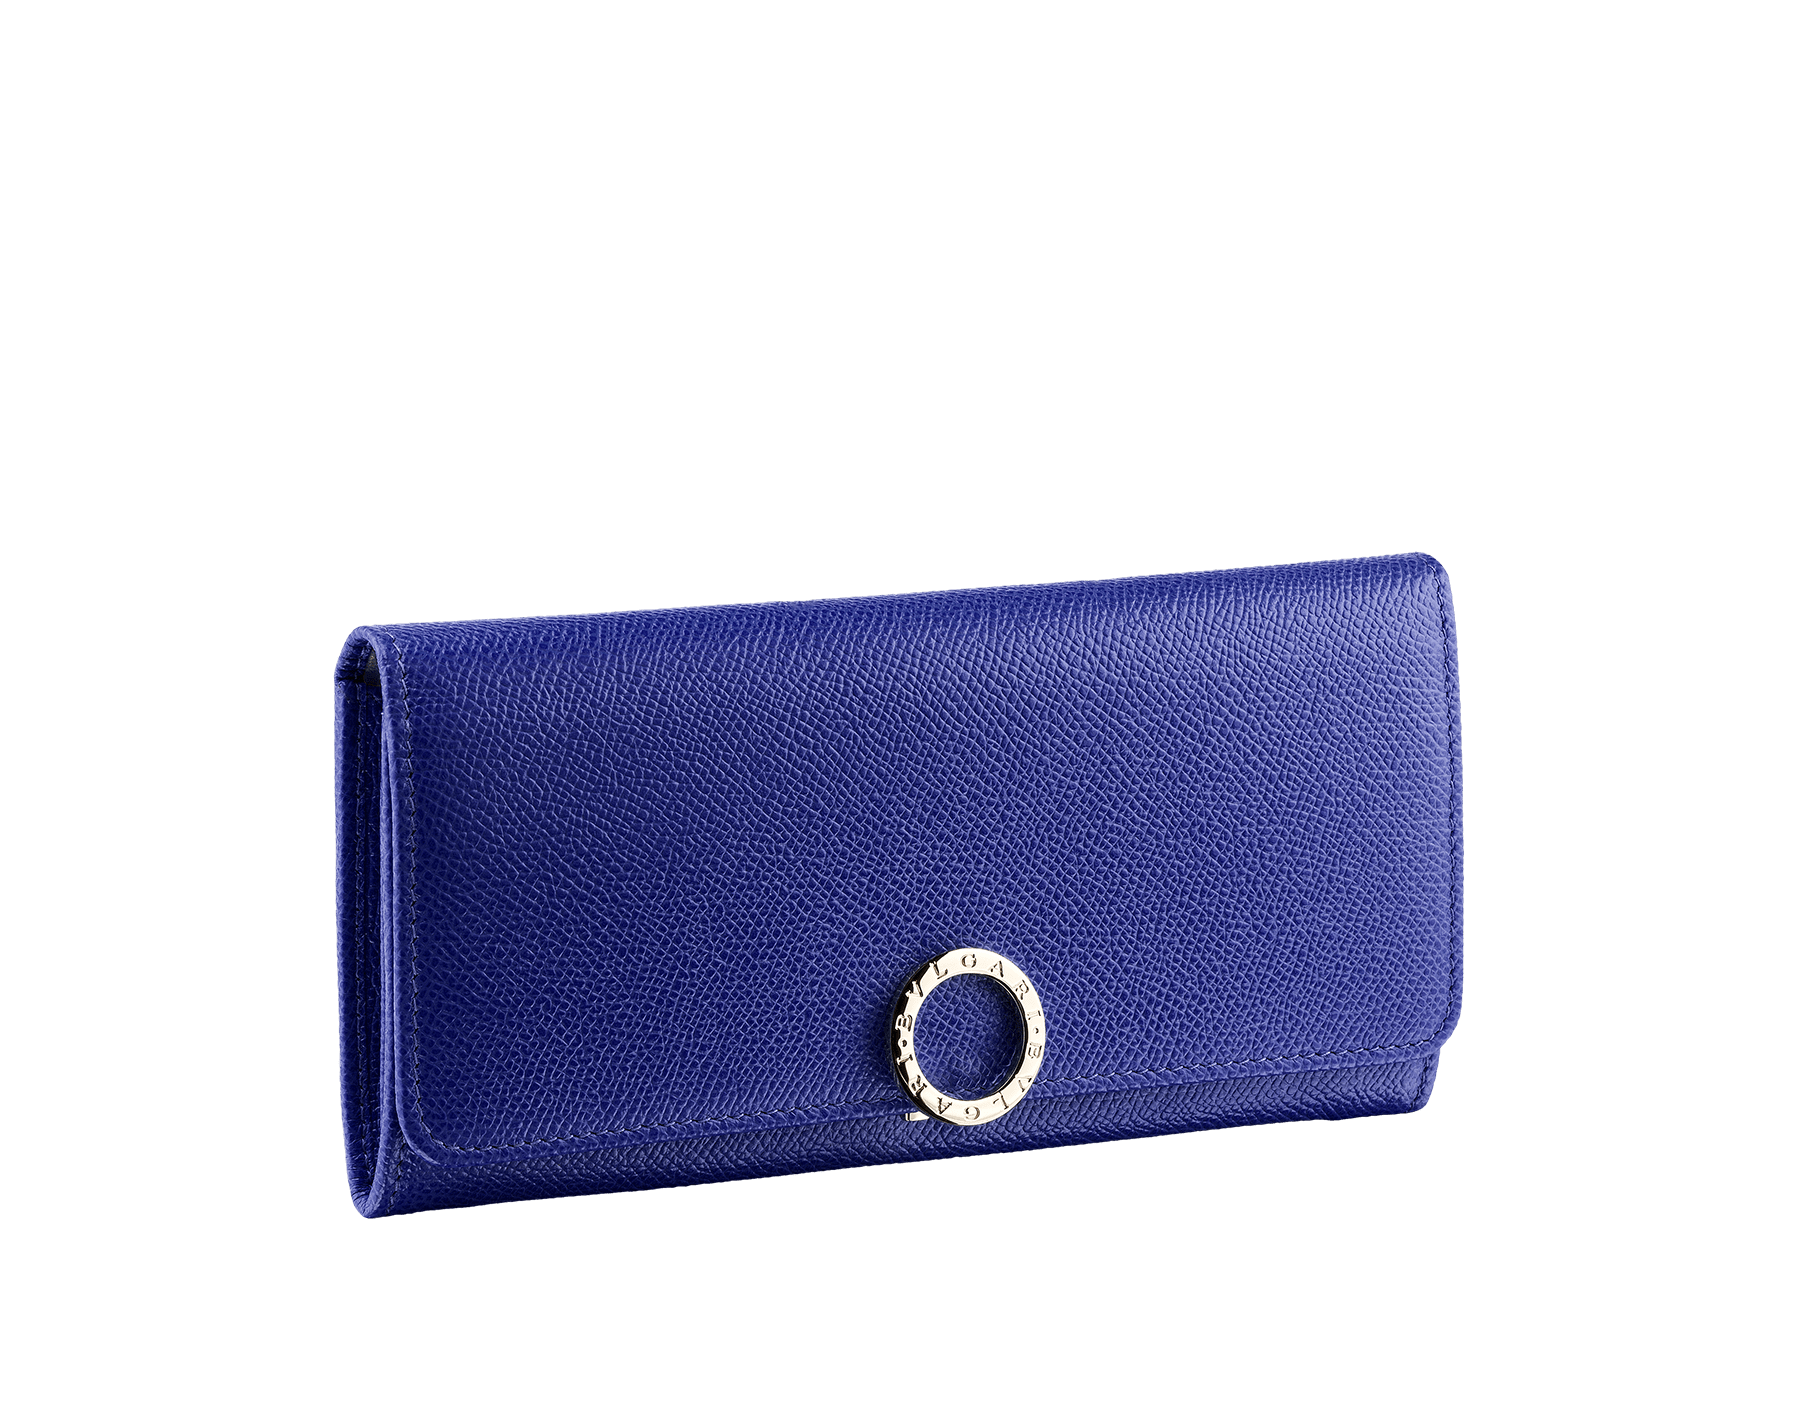 """BVLGARI BVLGARI"" large wallet in Lavender Amethyst lilac bright grained calf leather and peach nappa leather. Iconic logo clip closure in light gold-plated brass. 579-WLT-SLI-POC-CLd image 1"